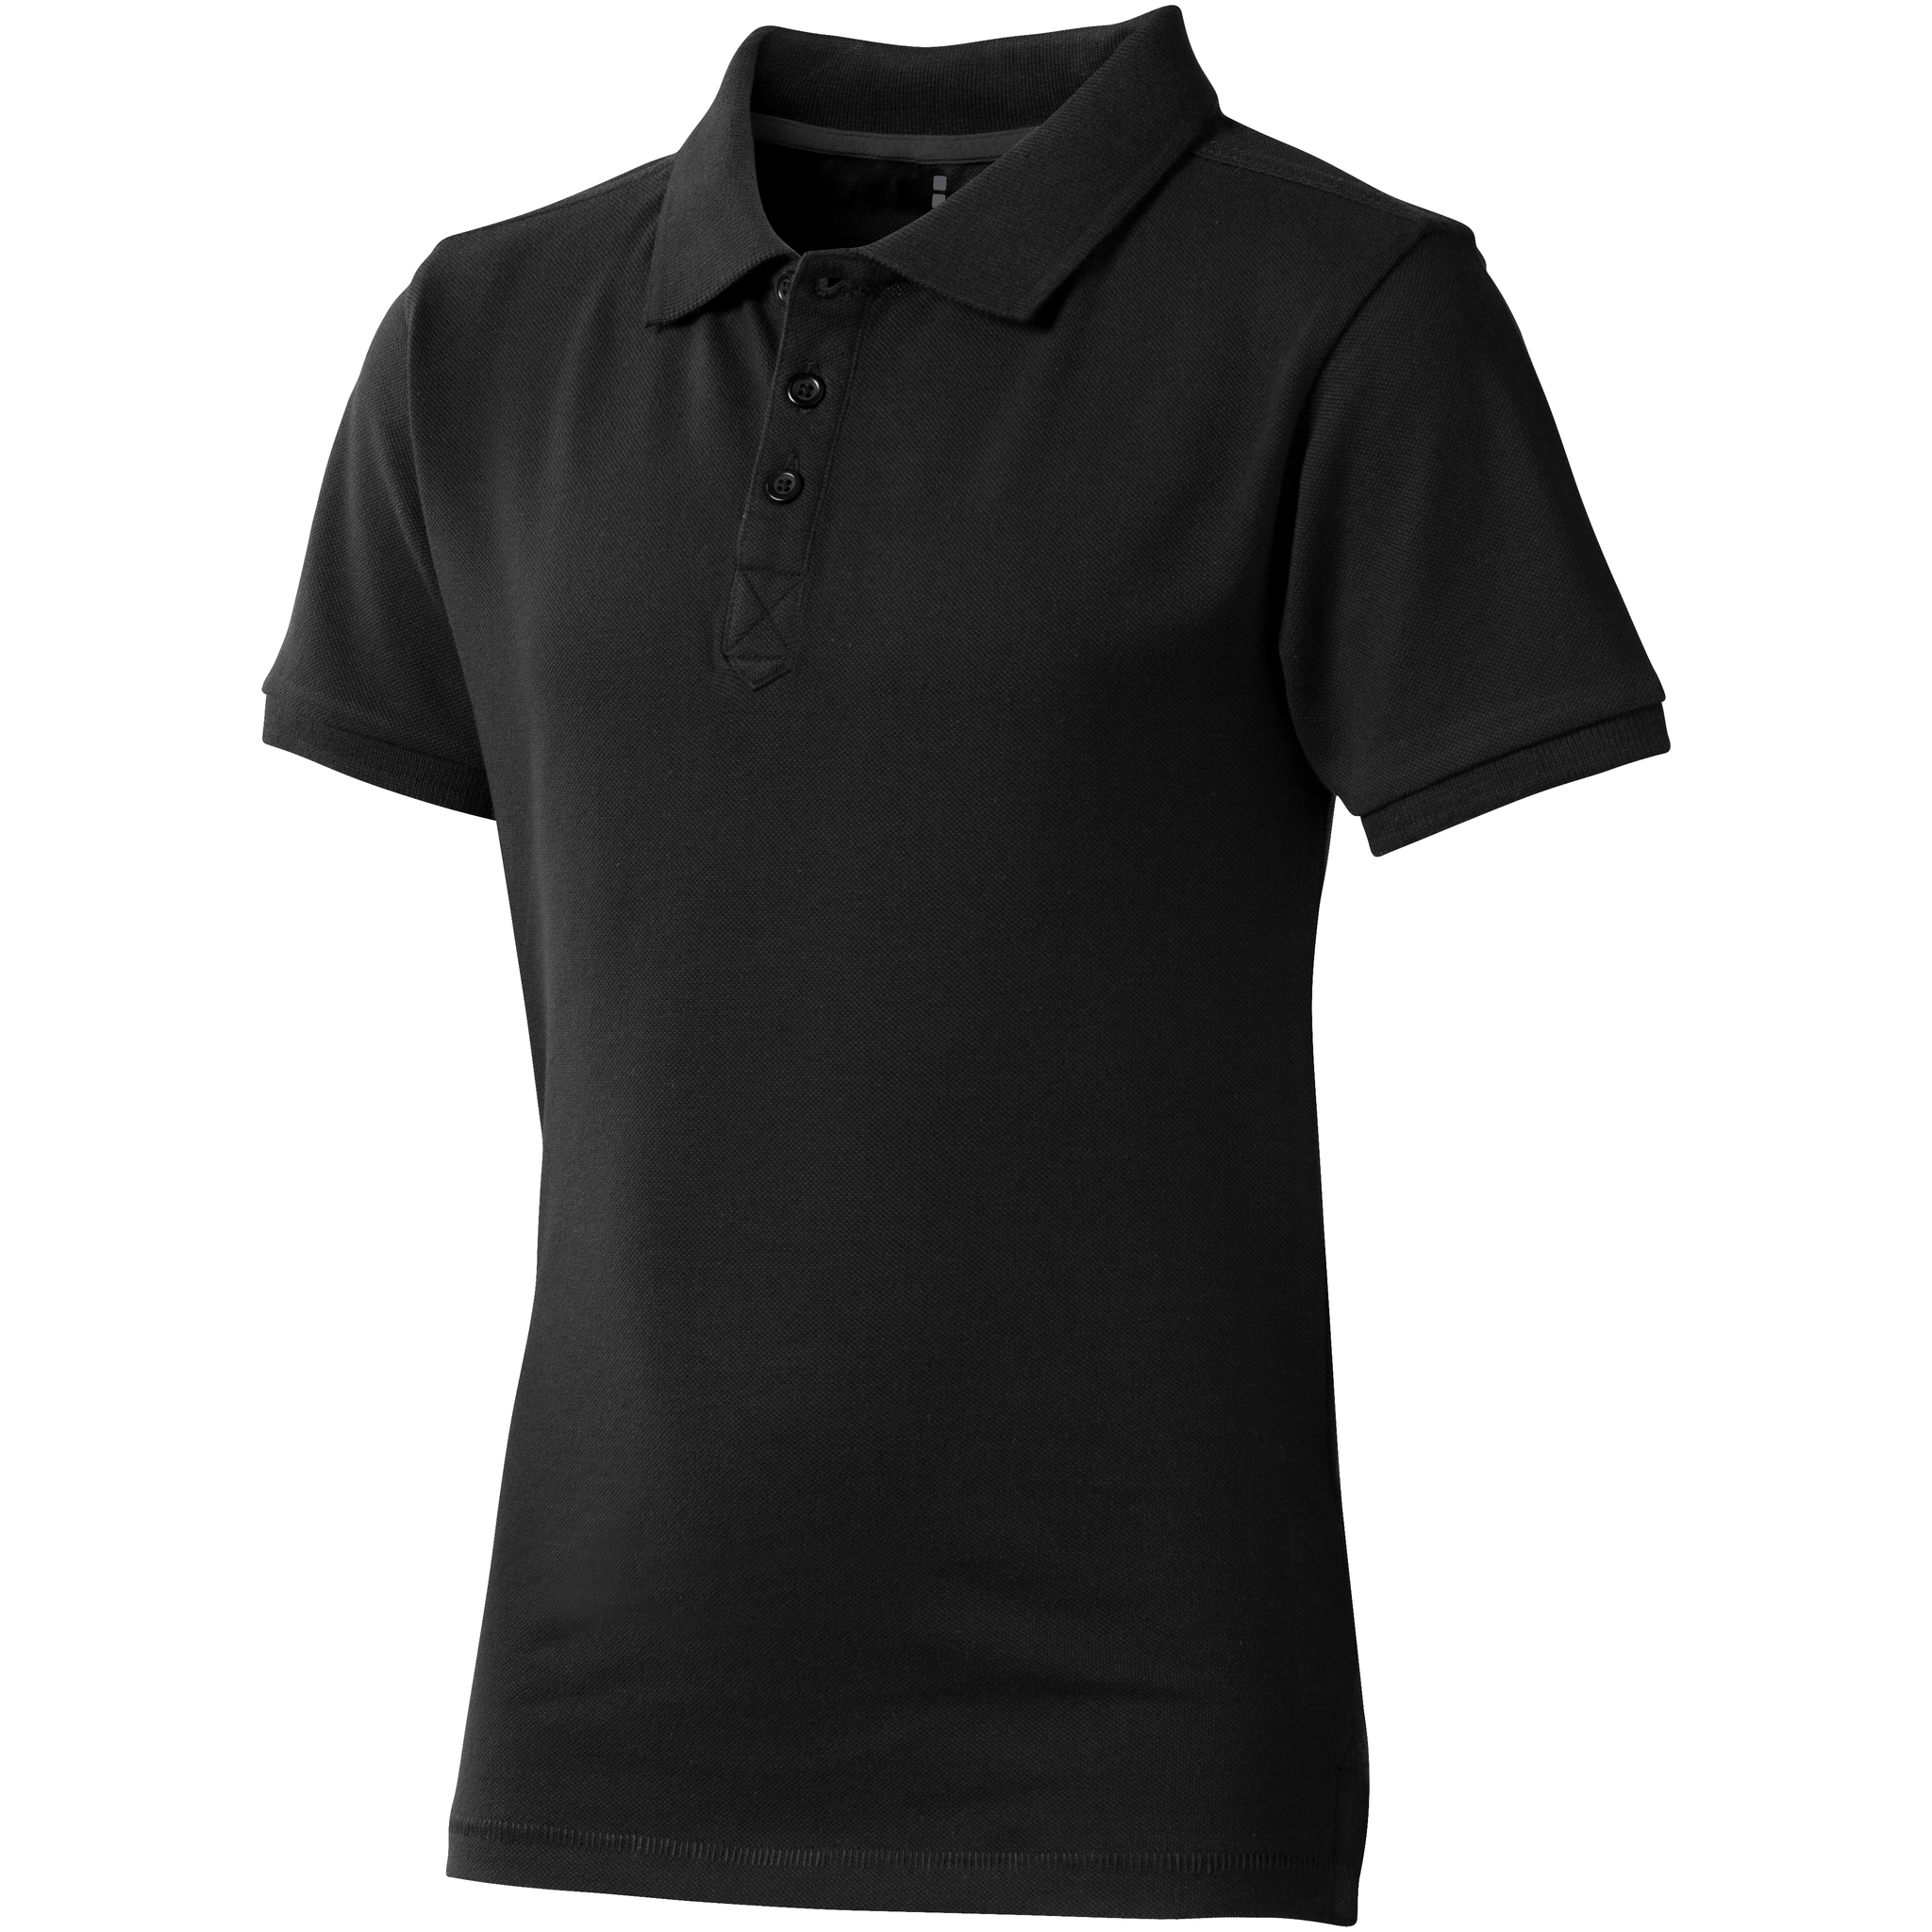 Elevate-Calgary-Polo-a-manches-courtes-Enfant-PF1818